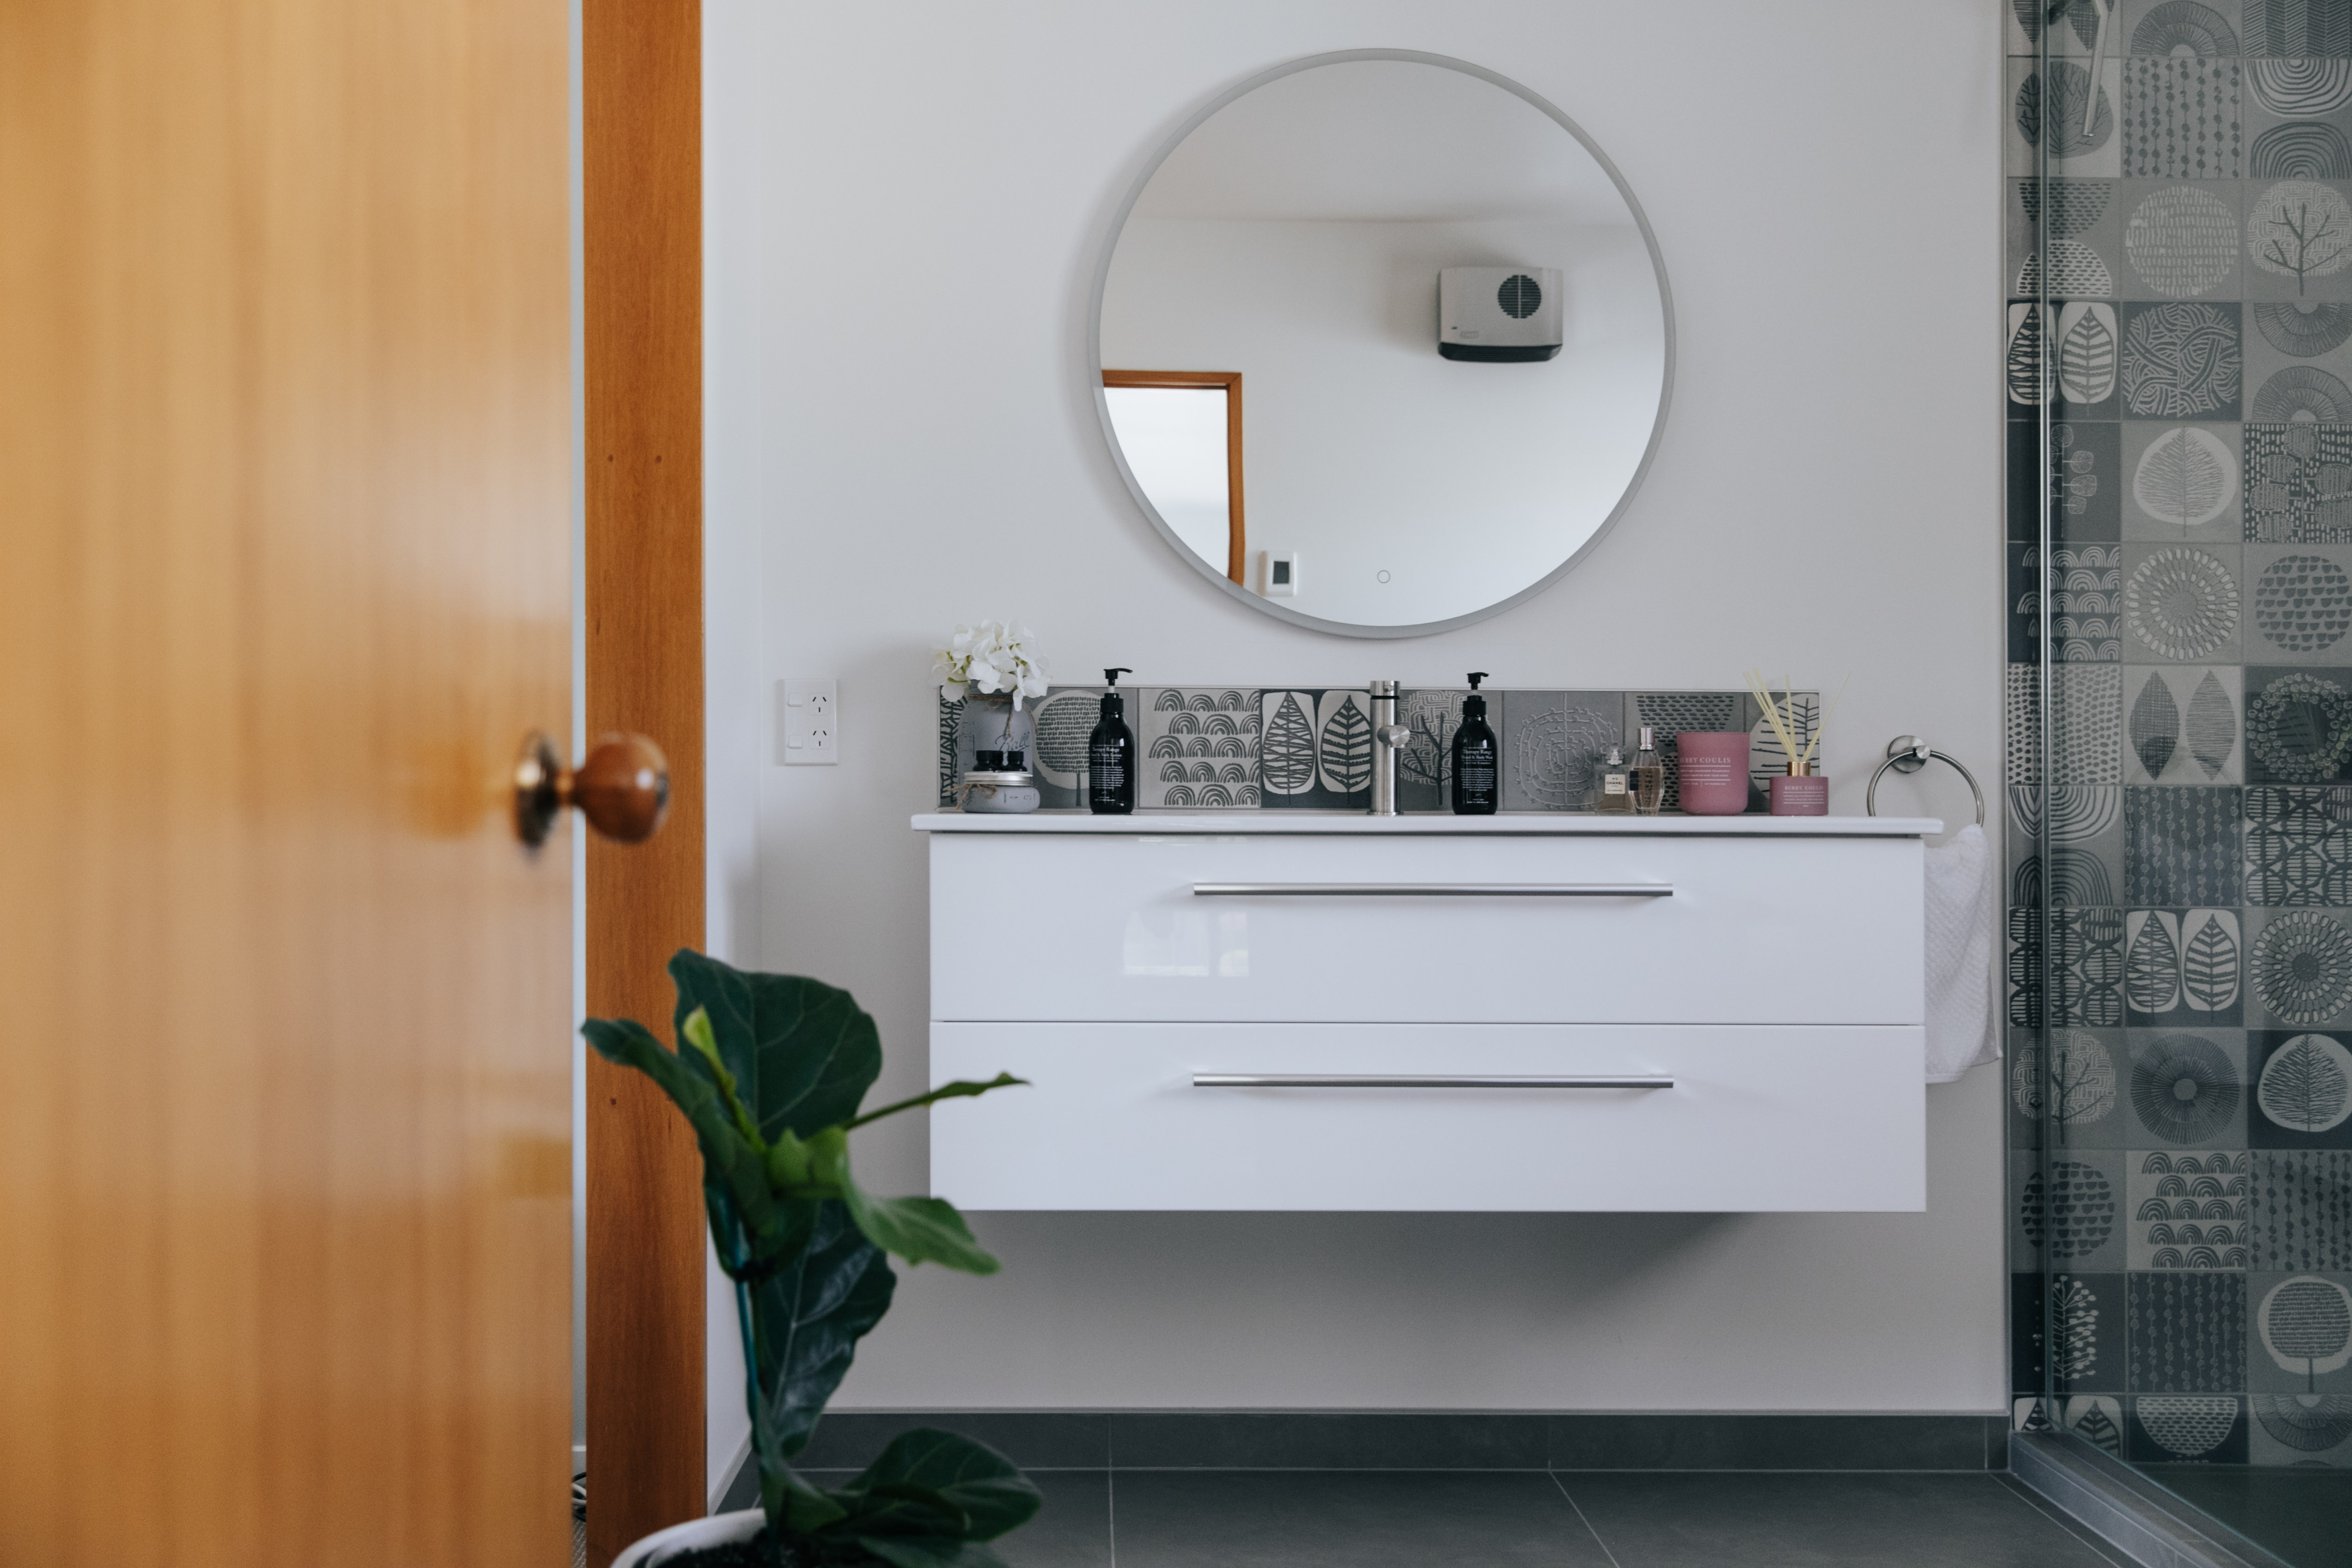 A 1200 wall hung vanity with a decorative tiled splashback